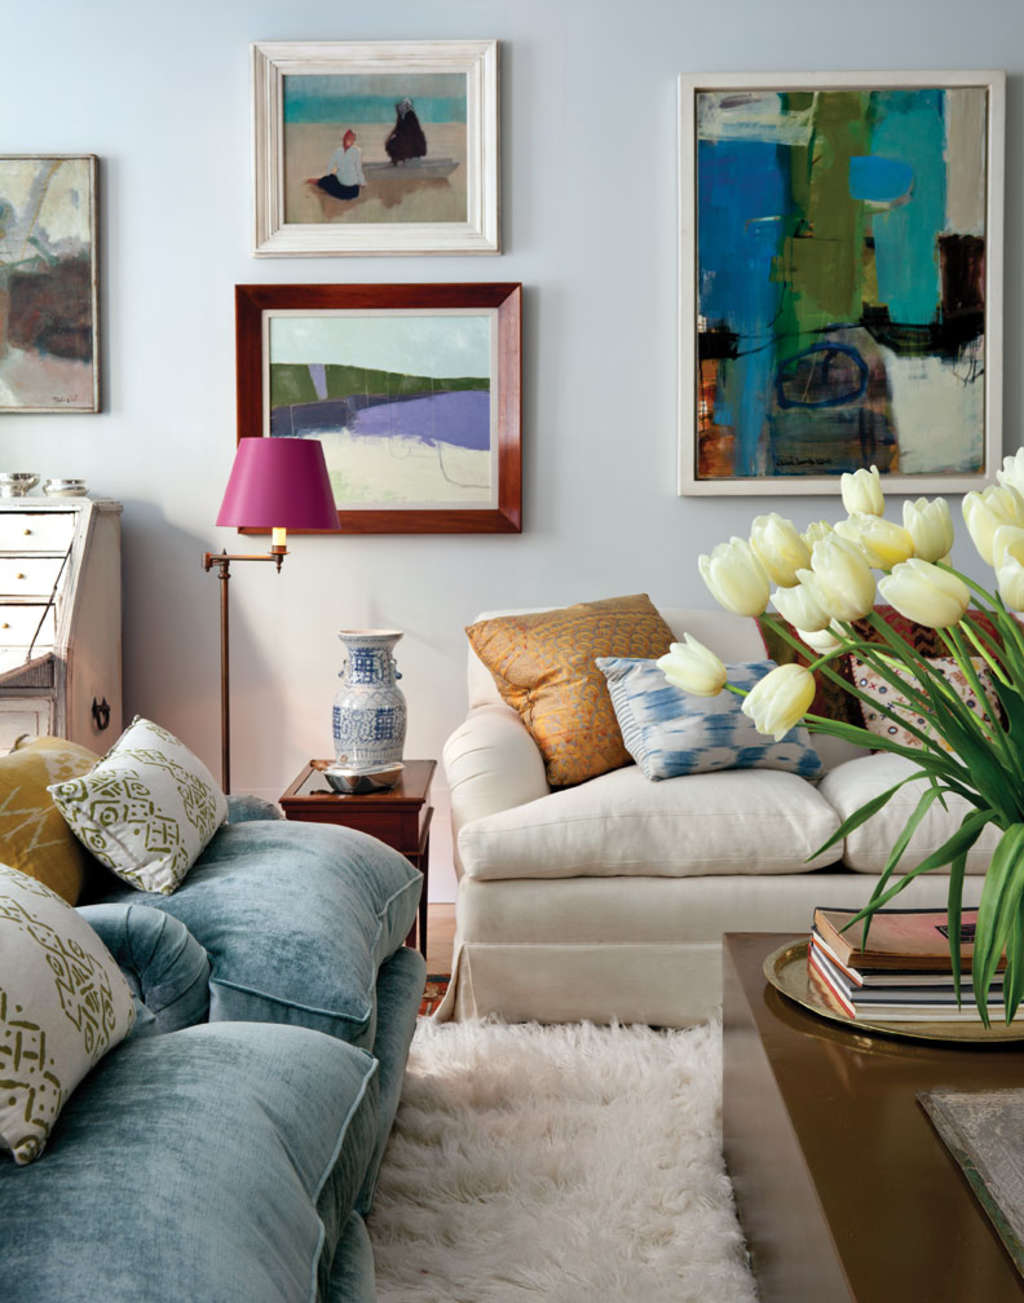 Watch 6 Wall Decor Finds Youll Love at First Sight—And They Cost as Little as 19 video